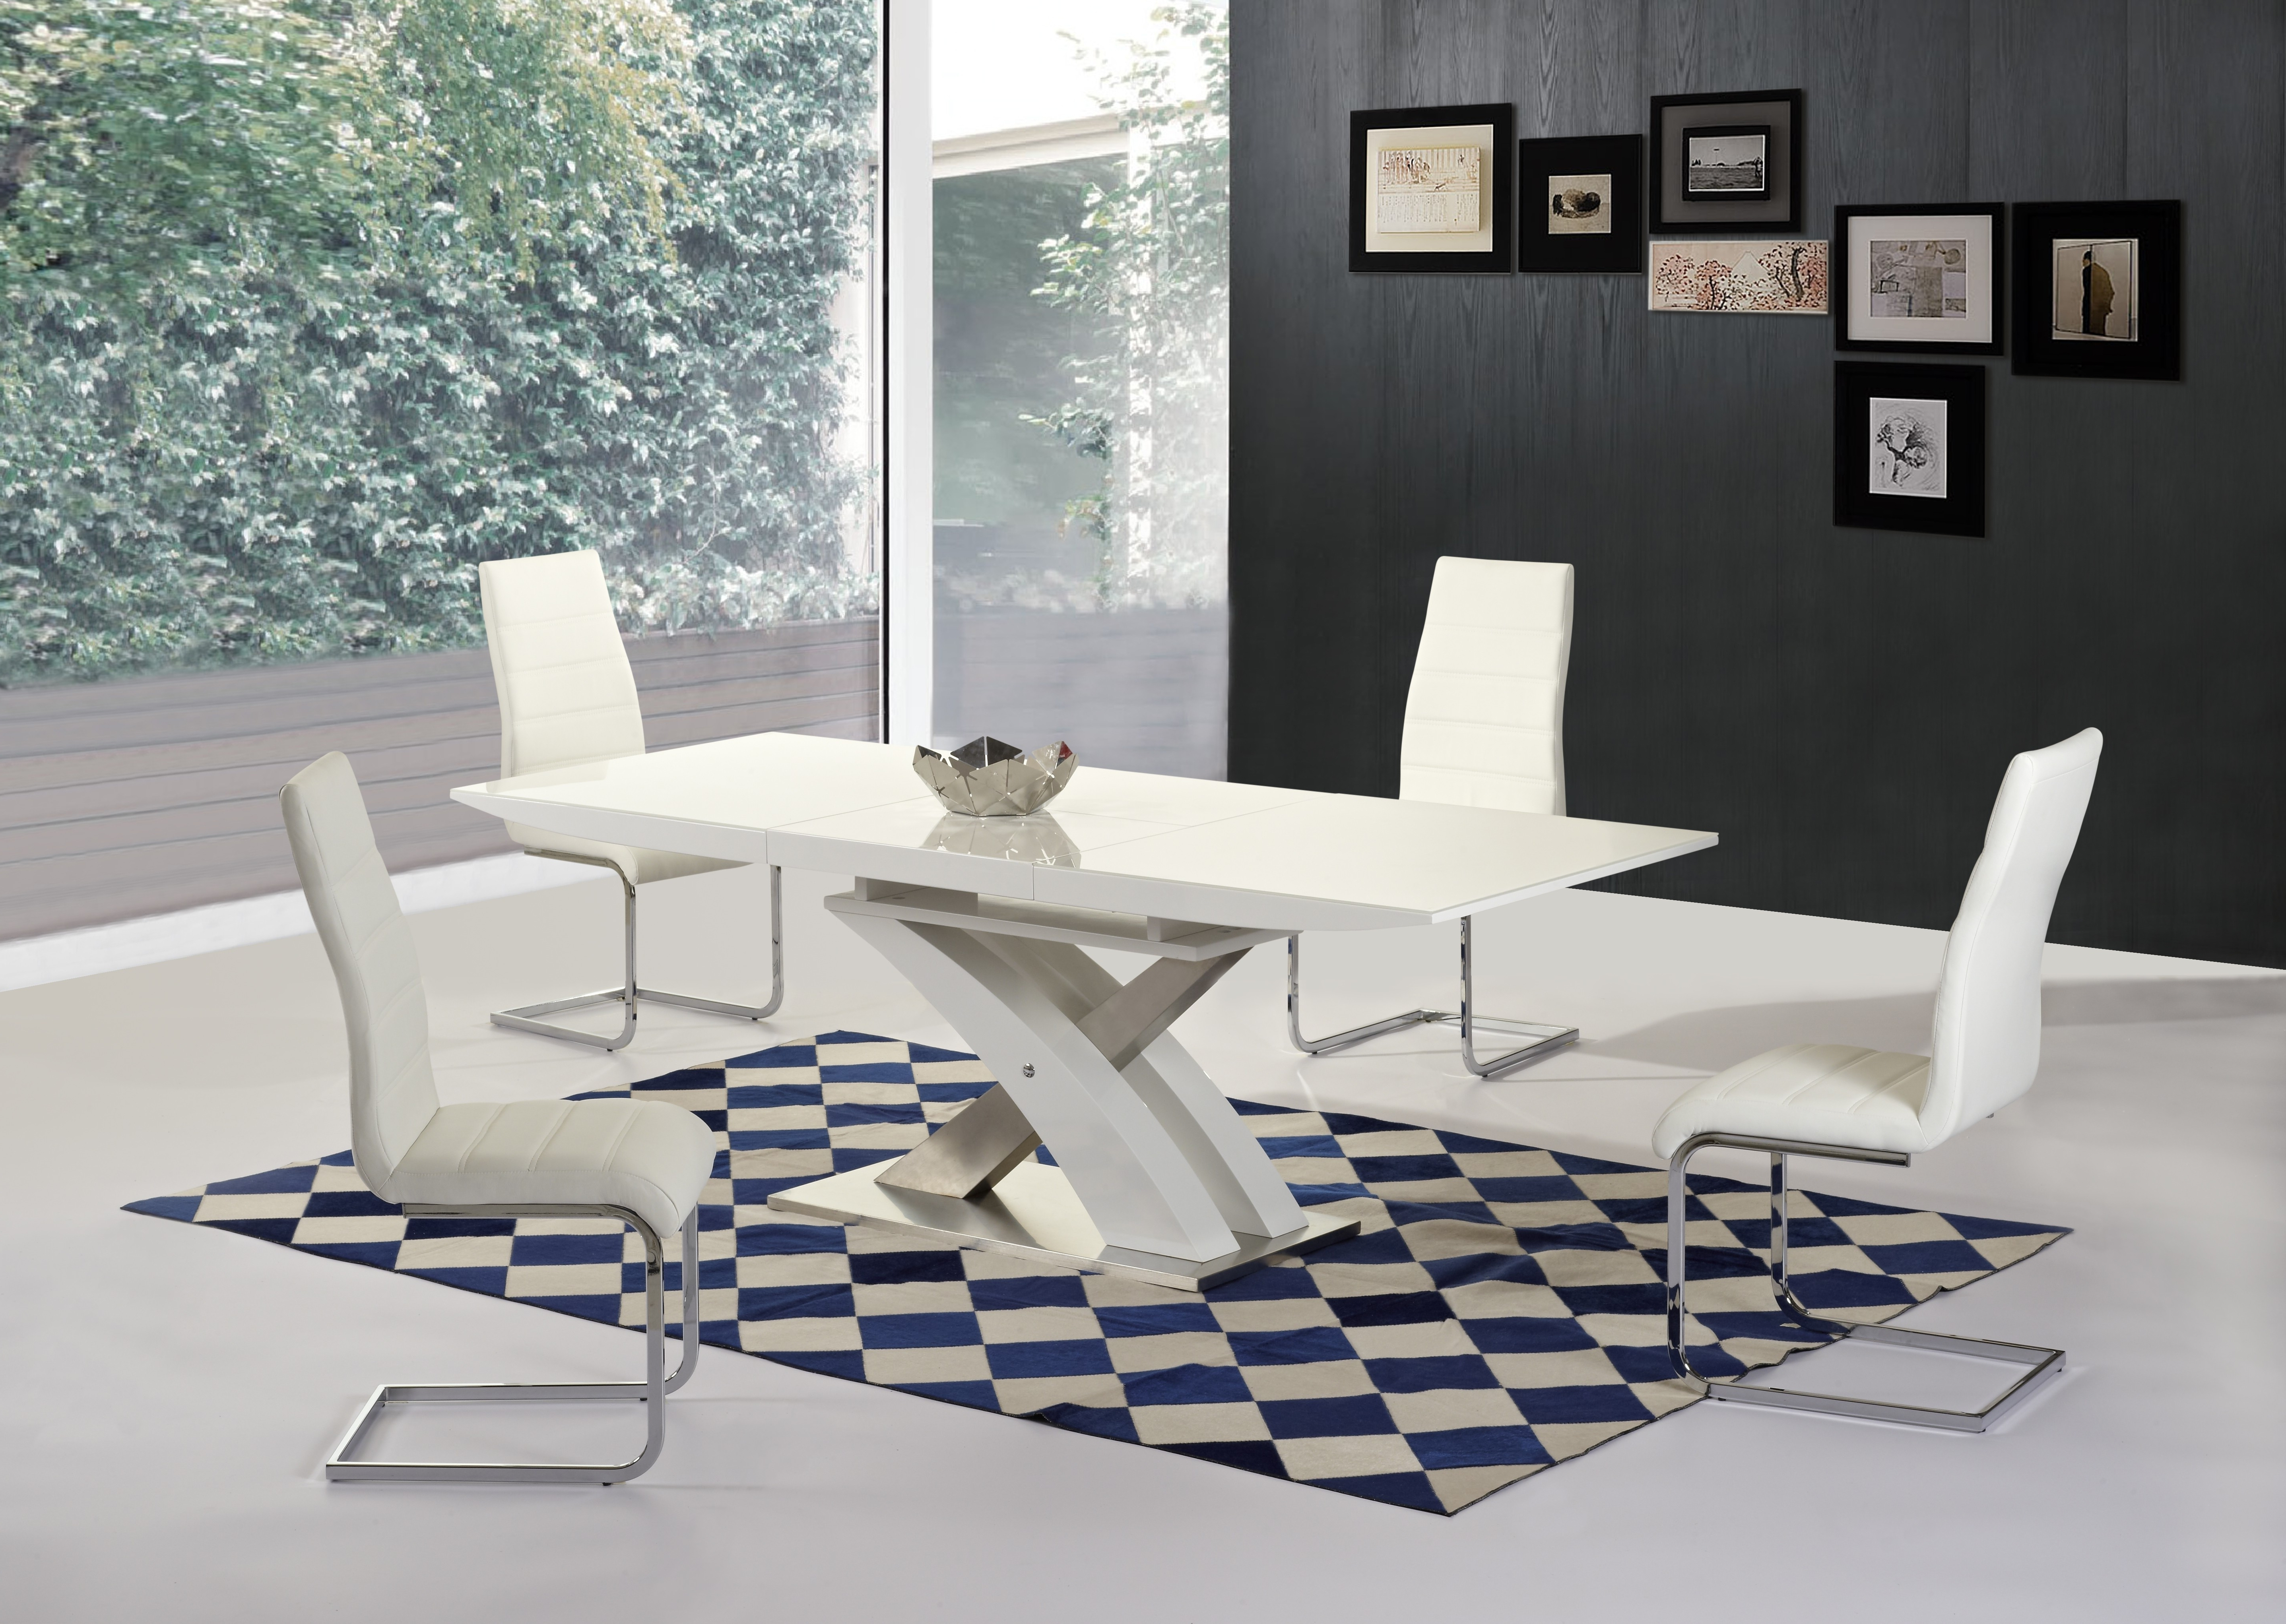 Mayfair Dining Tables Pertaining To Favorite Mayfair Extending Dining Table With Arora Chairs – Home Living (View 13 of 25)